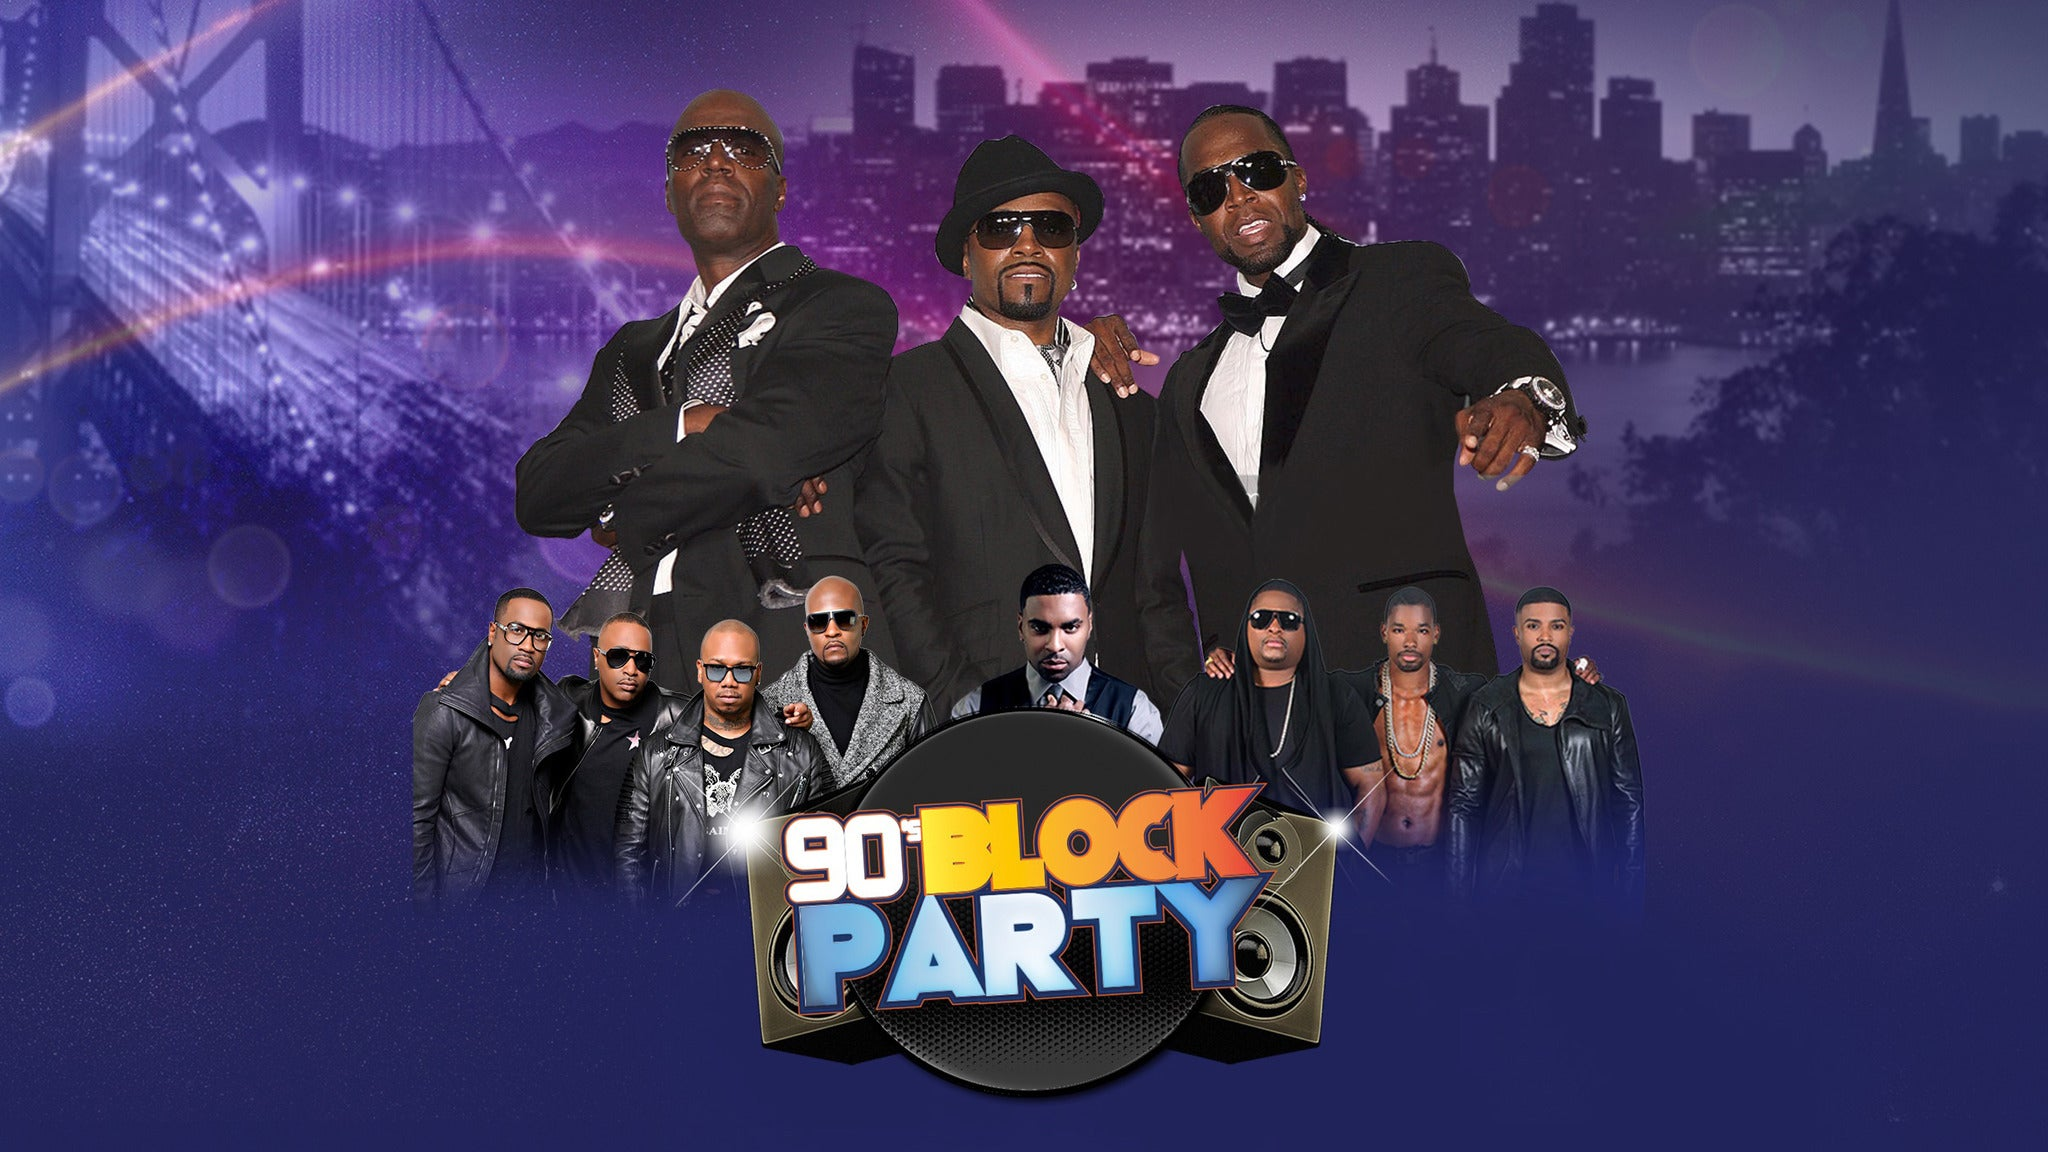 Bay Area 90's Block Party at Paramount Theatre-Oakland